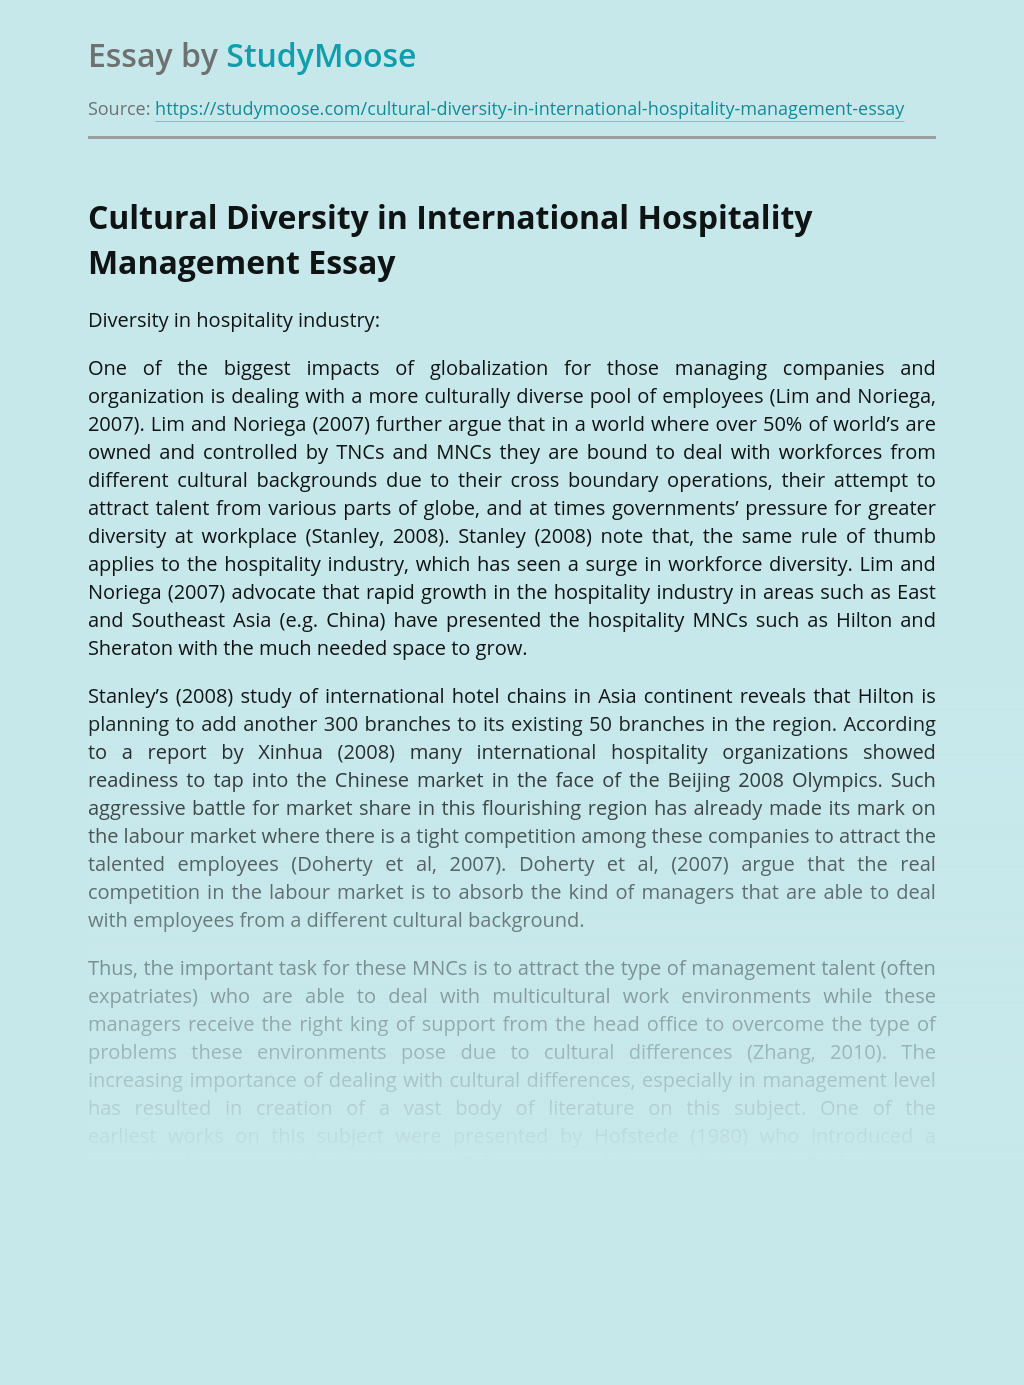 Cultural Diversity in International Hospitality Management